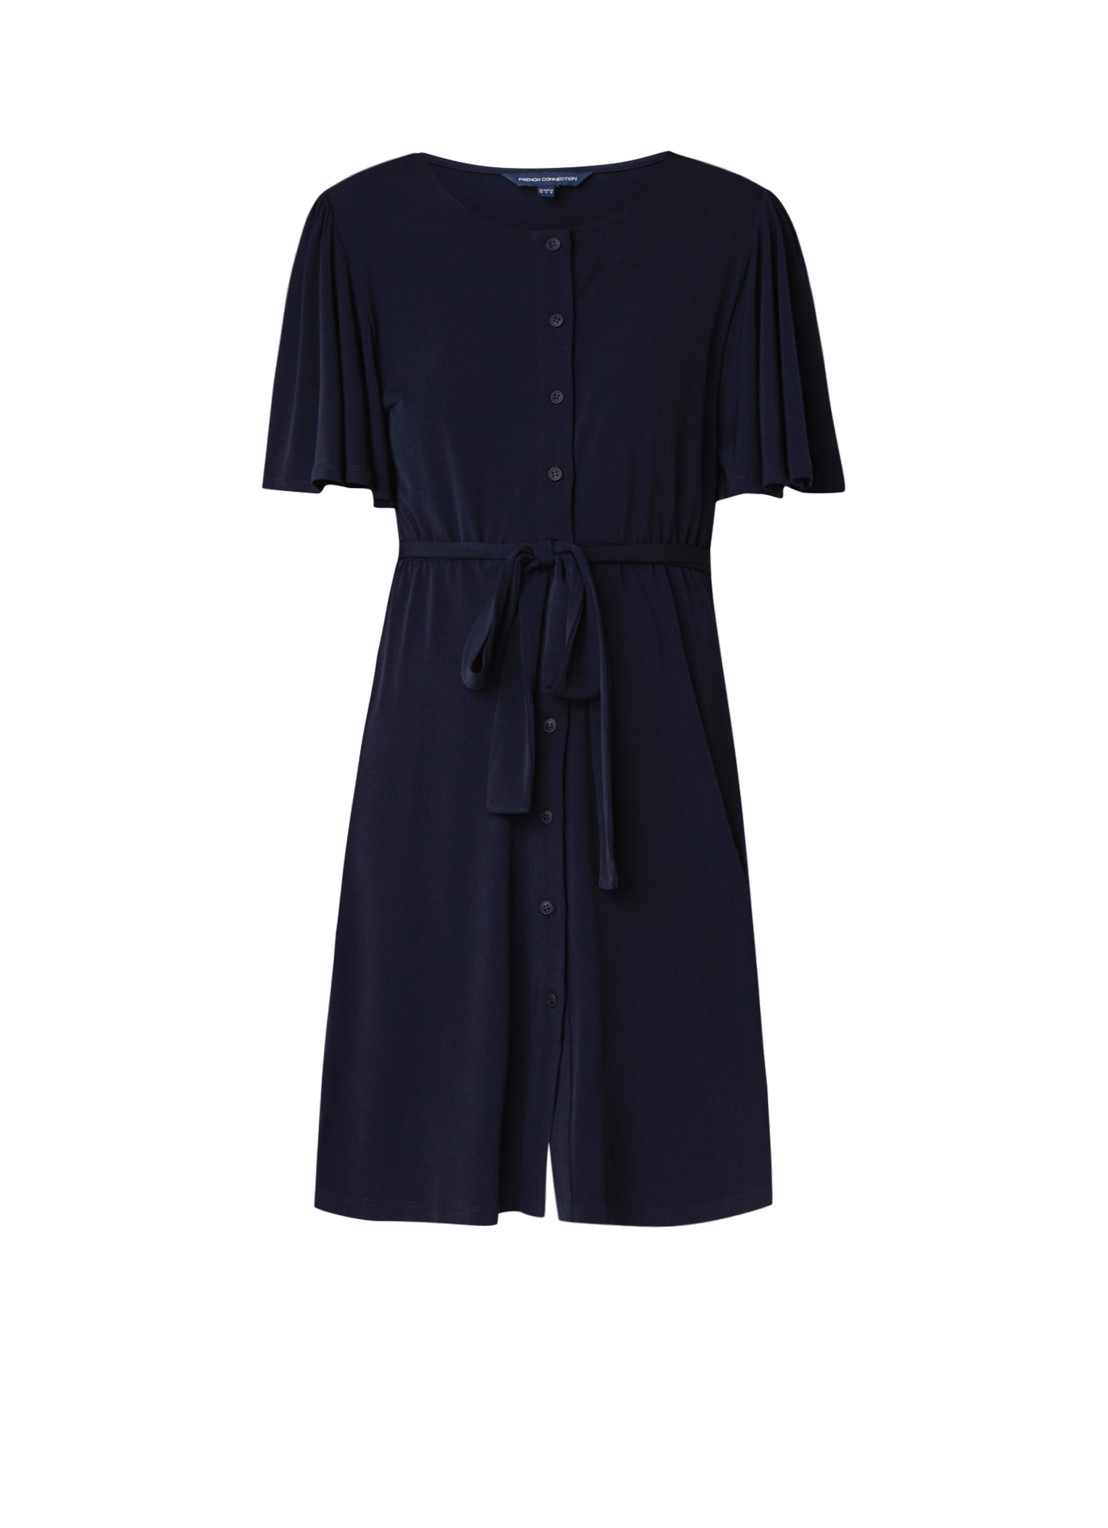 French Connection Serafina blousejurk van jersey met strikceintuur donkerblauw